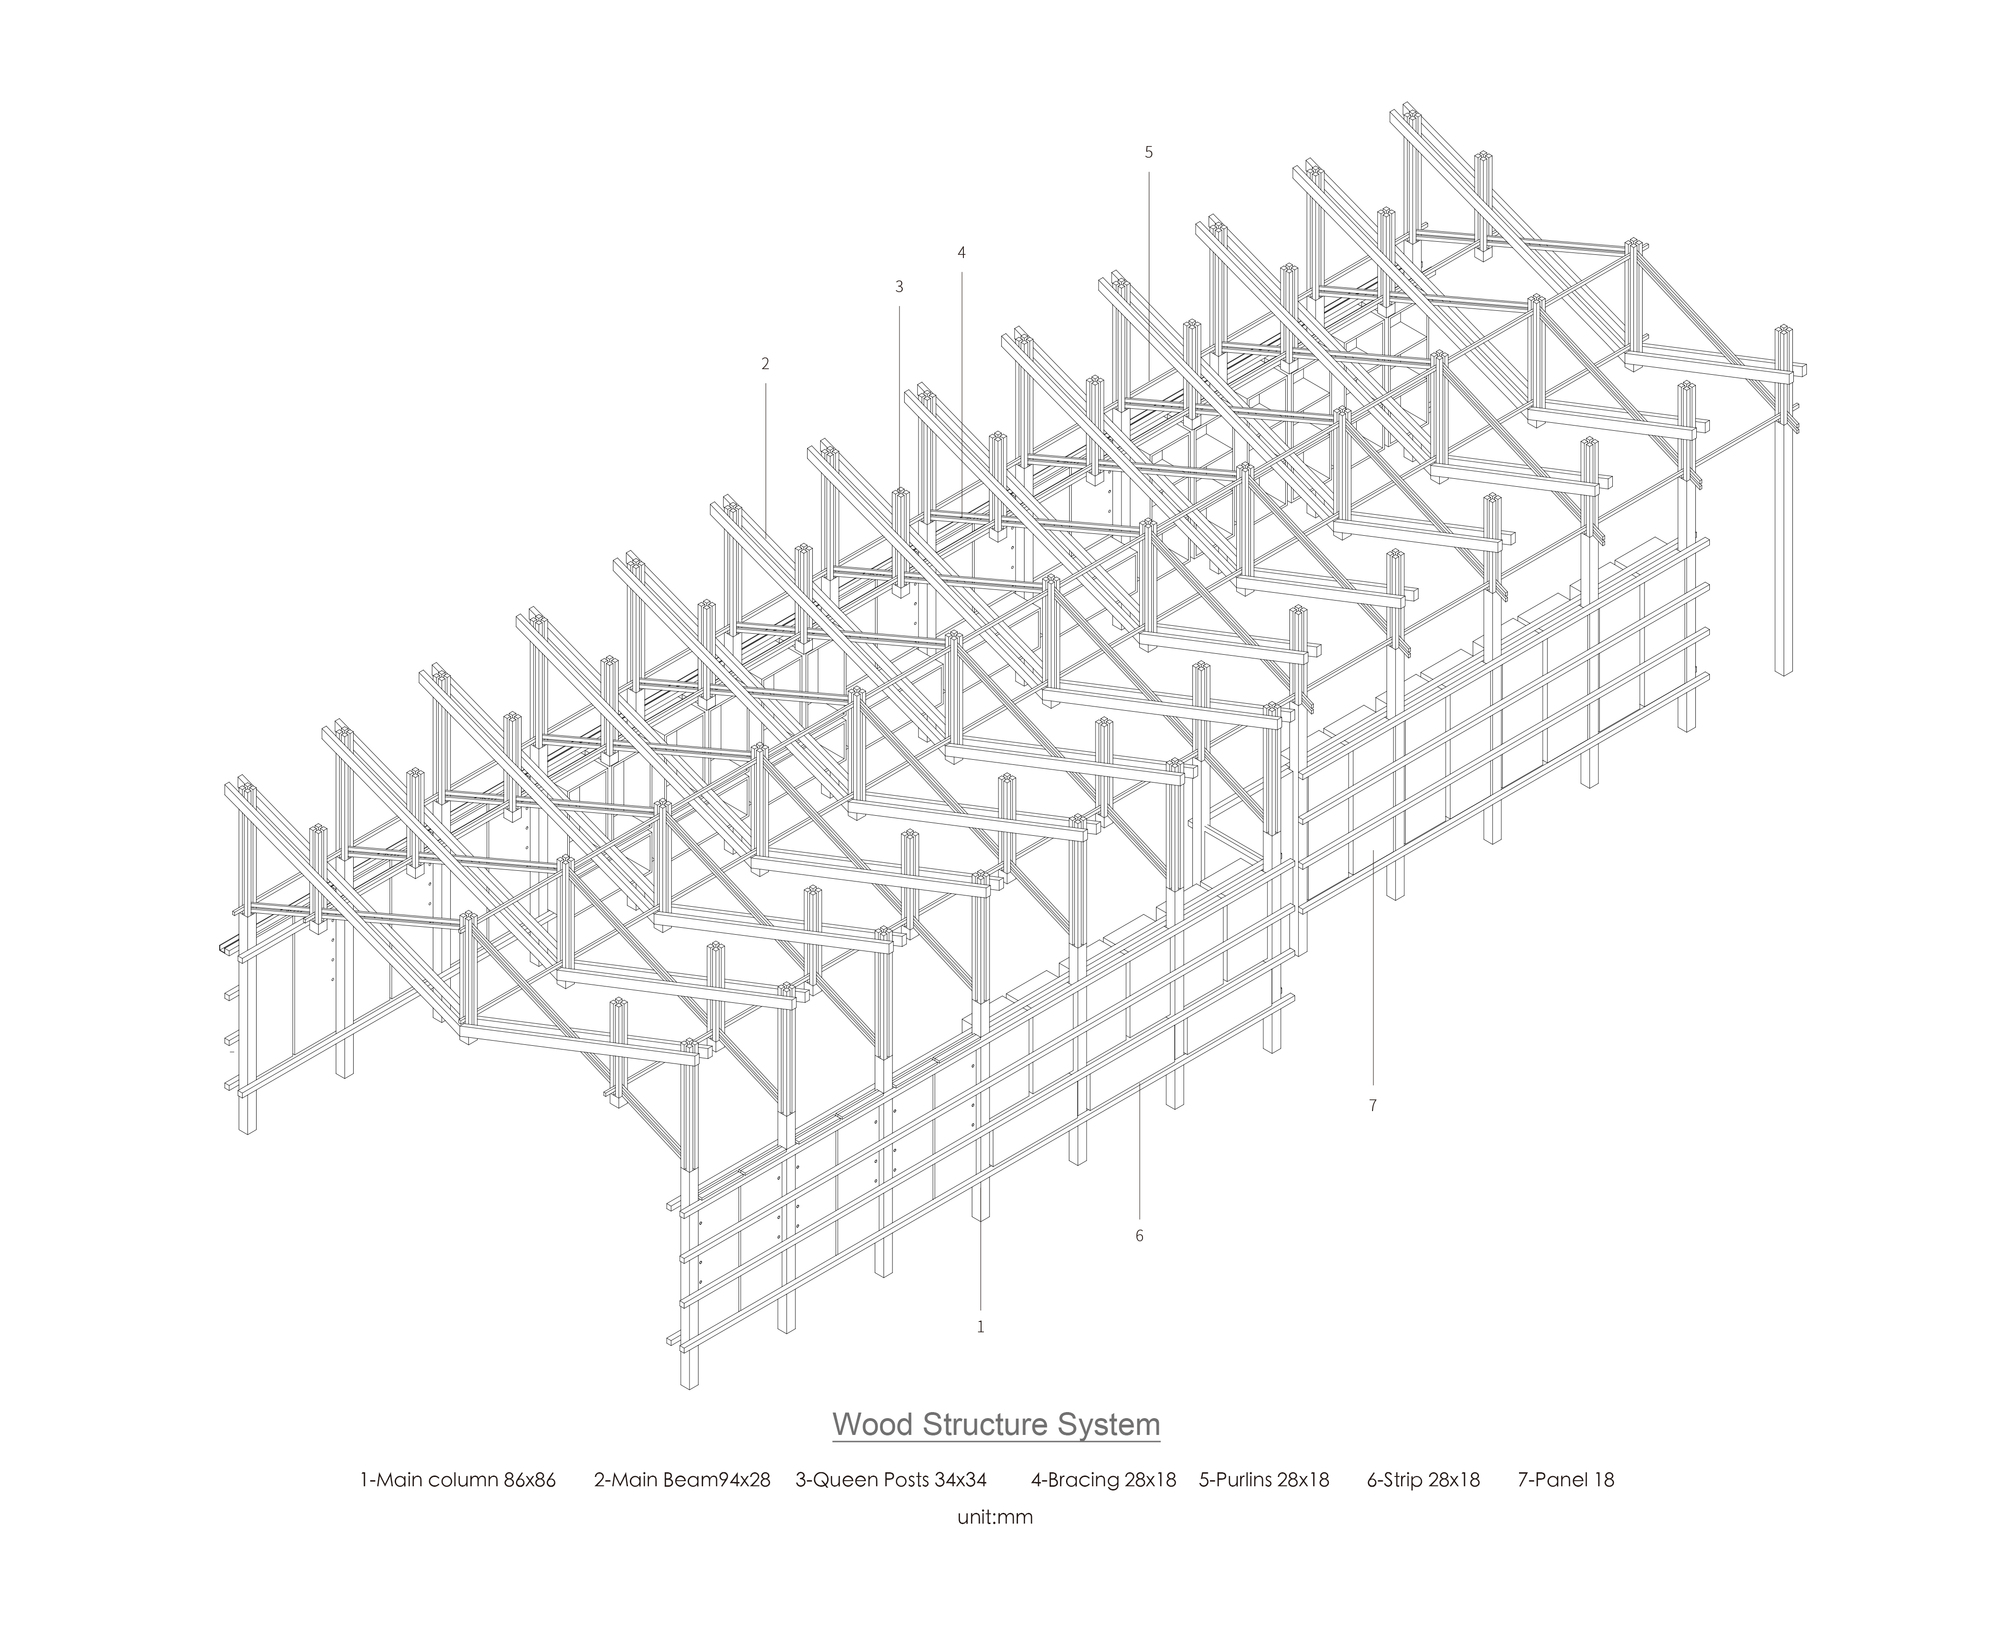 Truss Bridge Diagram Through Gallery Of The Inverted B P Architects 40 Zoom Image View Original Size